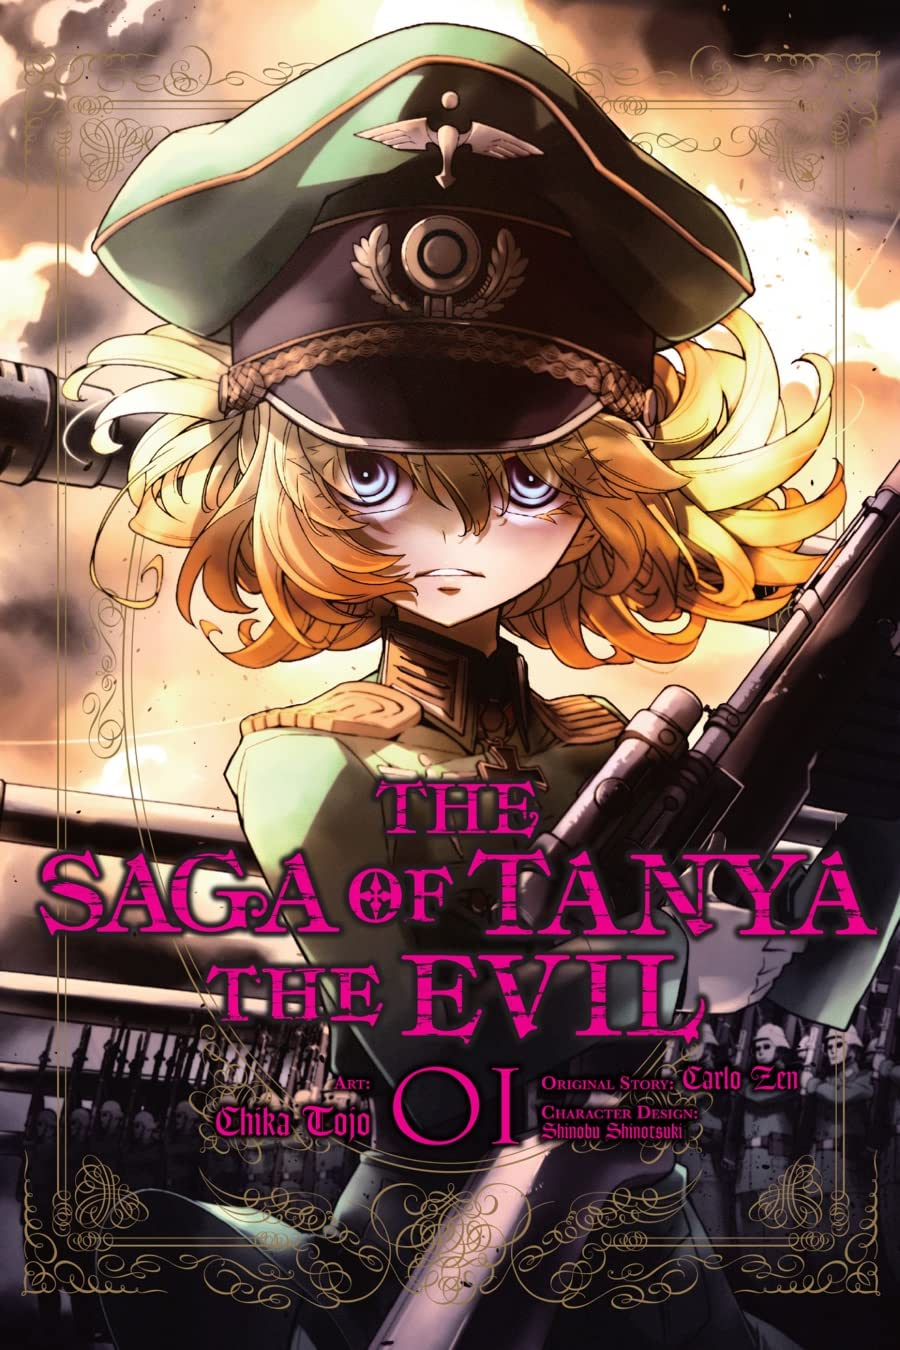 The Saga of Tanya the Evil Vol. 1